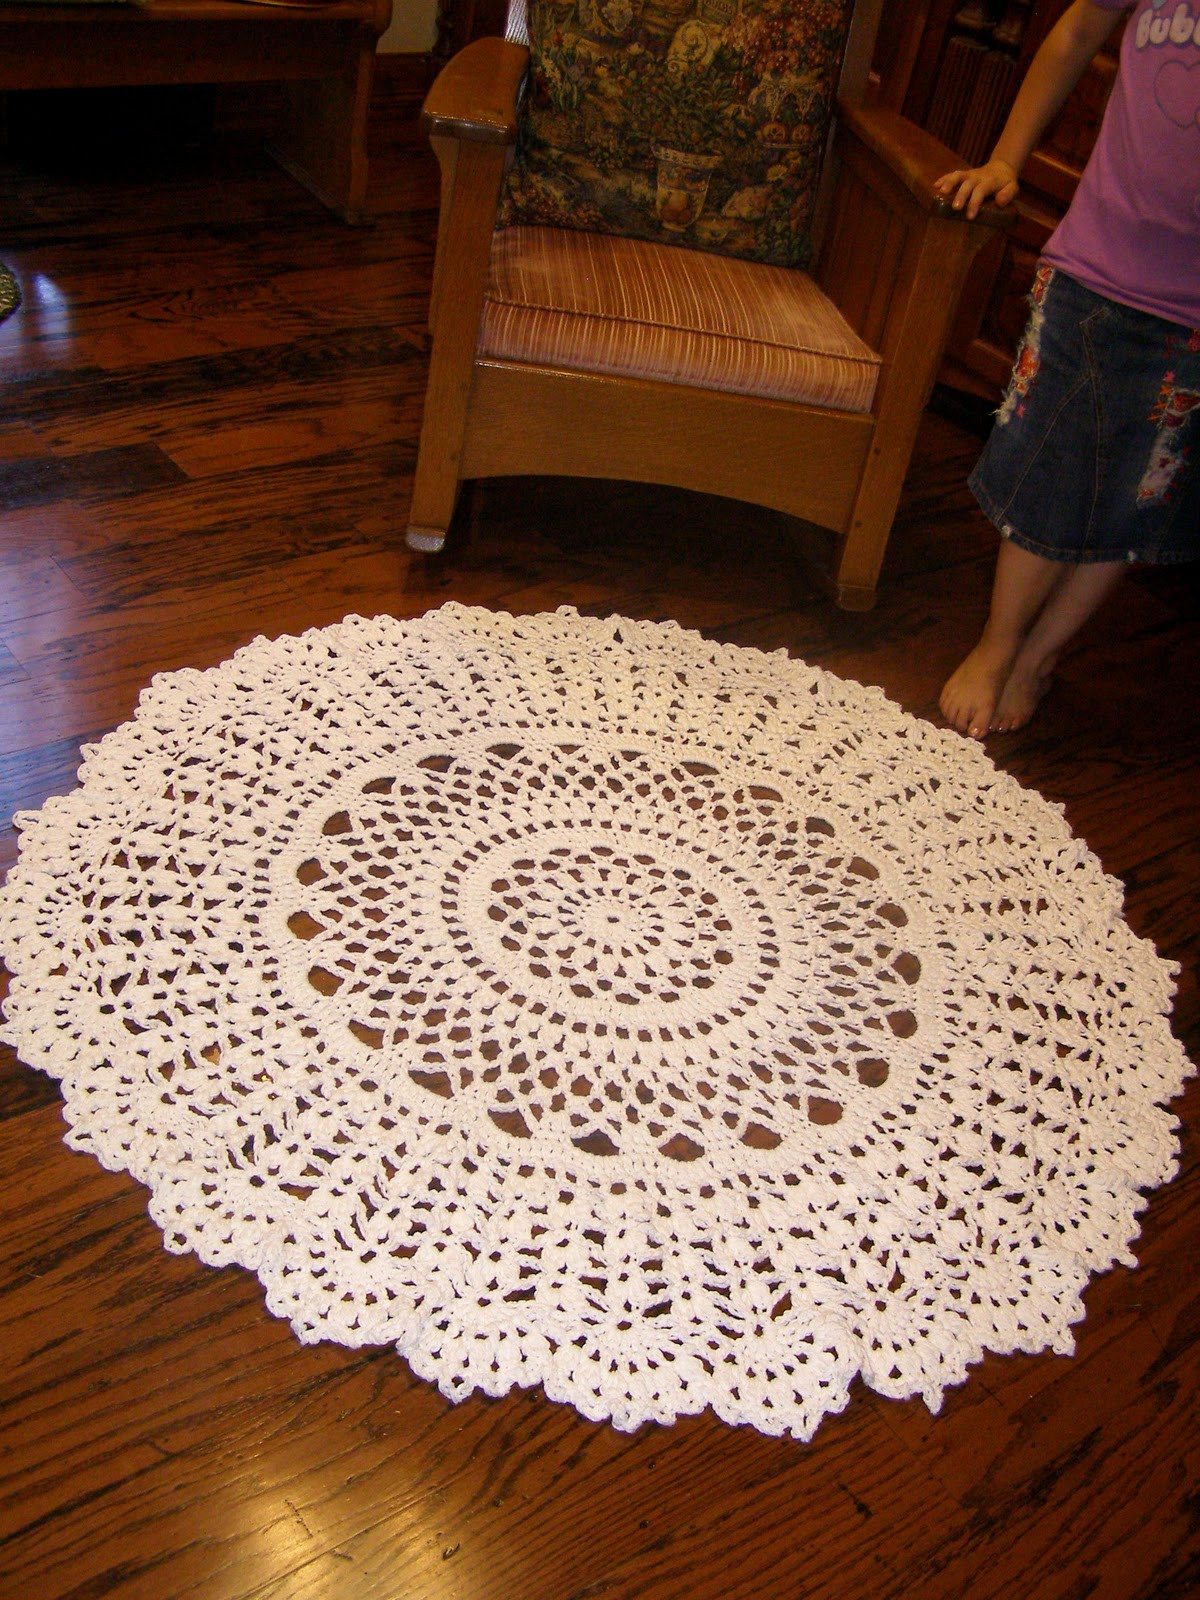 Unique Lace and Whimsy Crocheted Rug Doily Coverlet Afghan Doily Rug Of Fresh 50 Pics Doily Rug